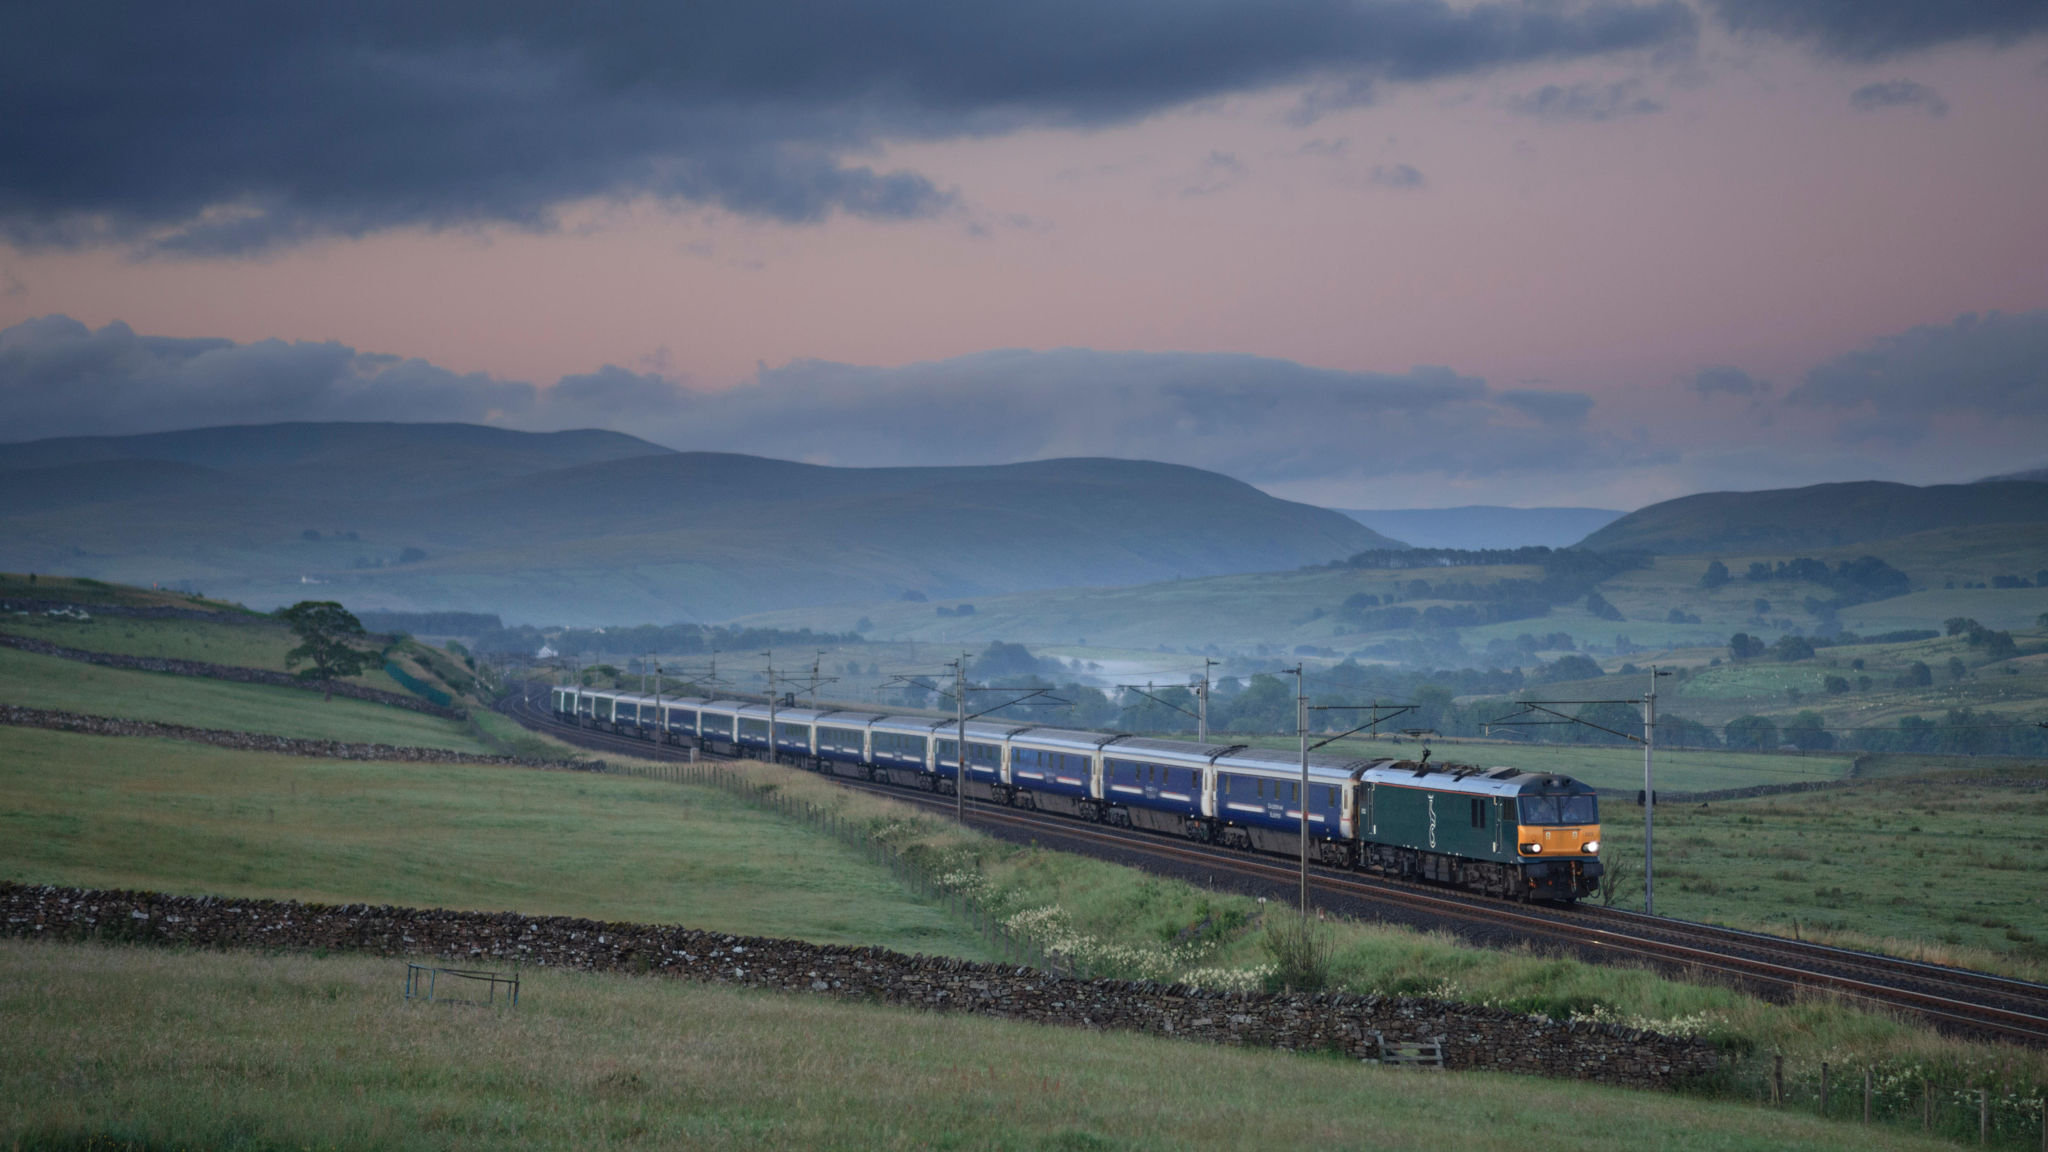 Can The New Caledonian Sleeper Revive The Romance Of Rail